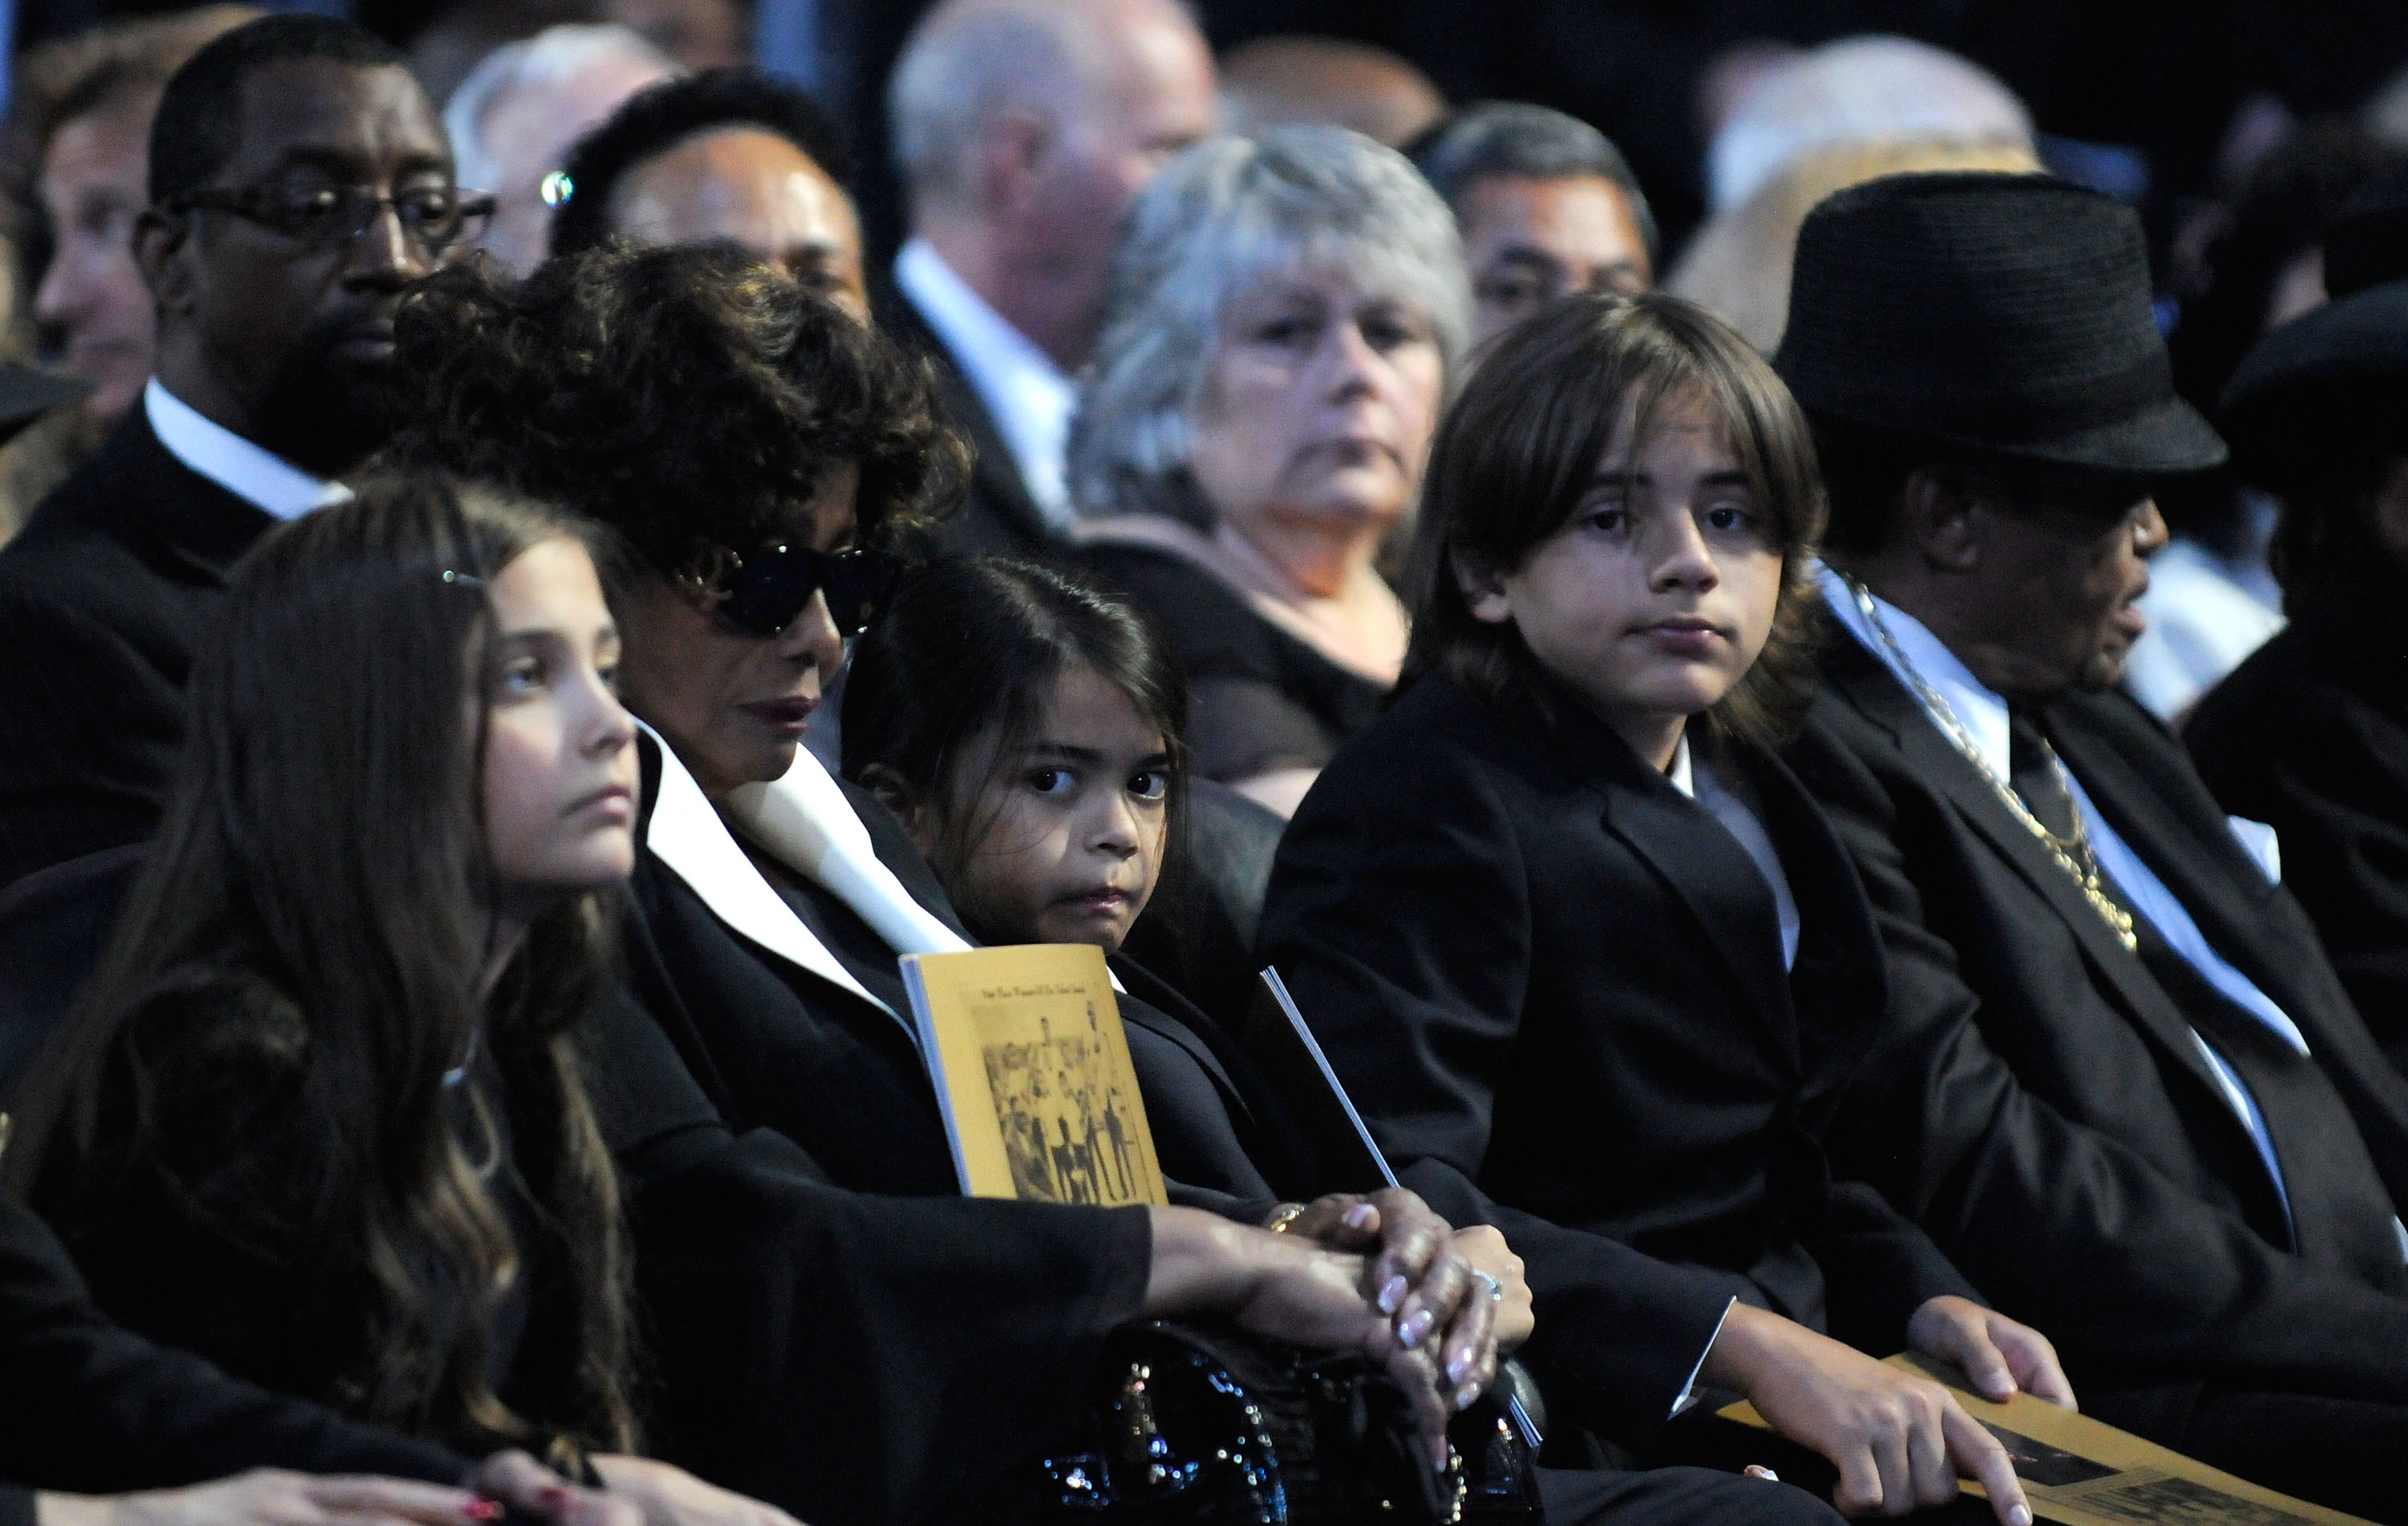 Paris Jackson, Katherine Jackson, Prince Michael Jackson II, Prince Michael Jackson, Joe Jackson attend Michael Jackson's Public Memorial Service held at Staples Center on July 7, 2009 in Los Angeles, California. (Photo by Harrison Funk/MJ Memorial via Getty Images)